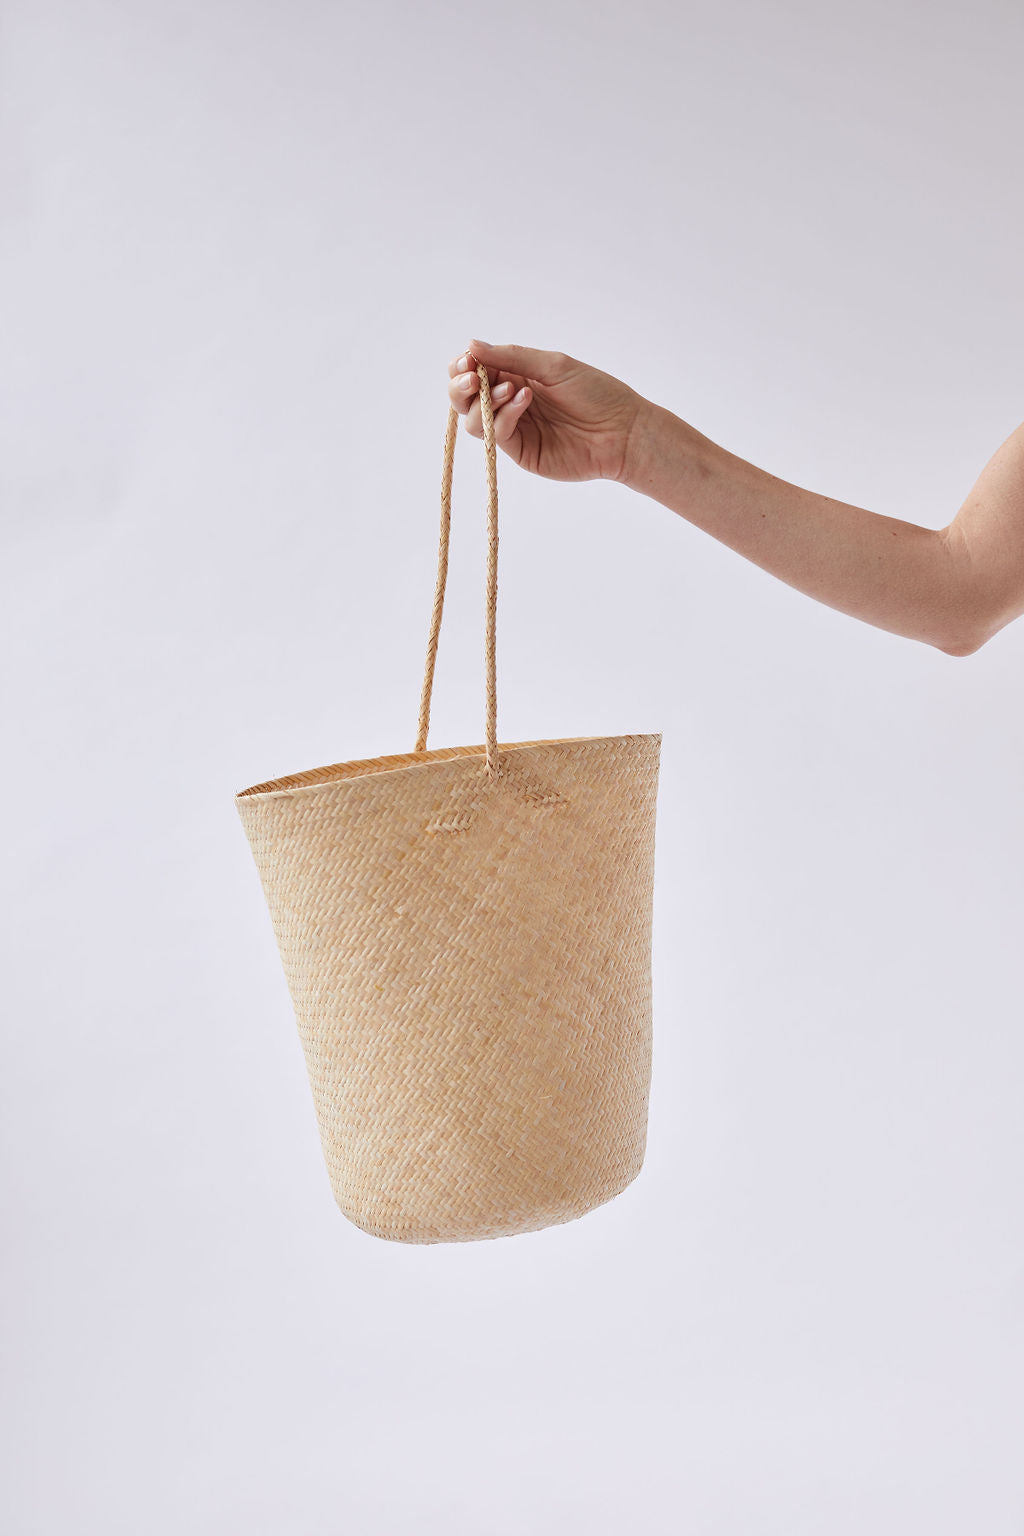 The Bucket Tote in Natural